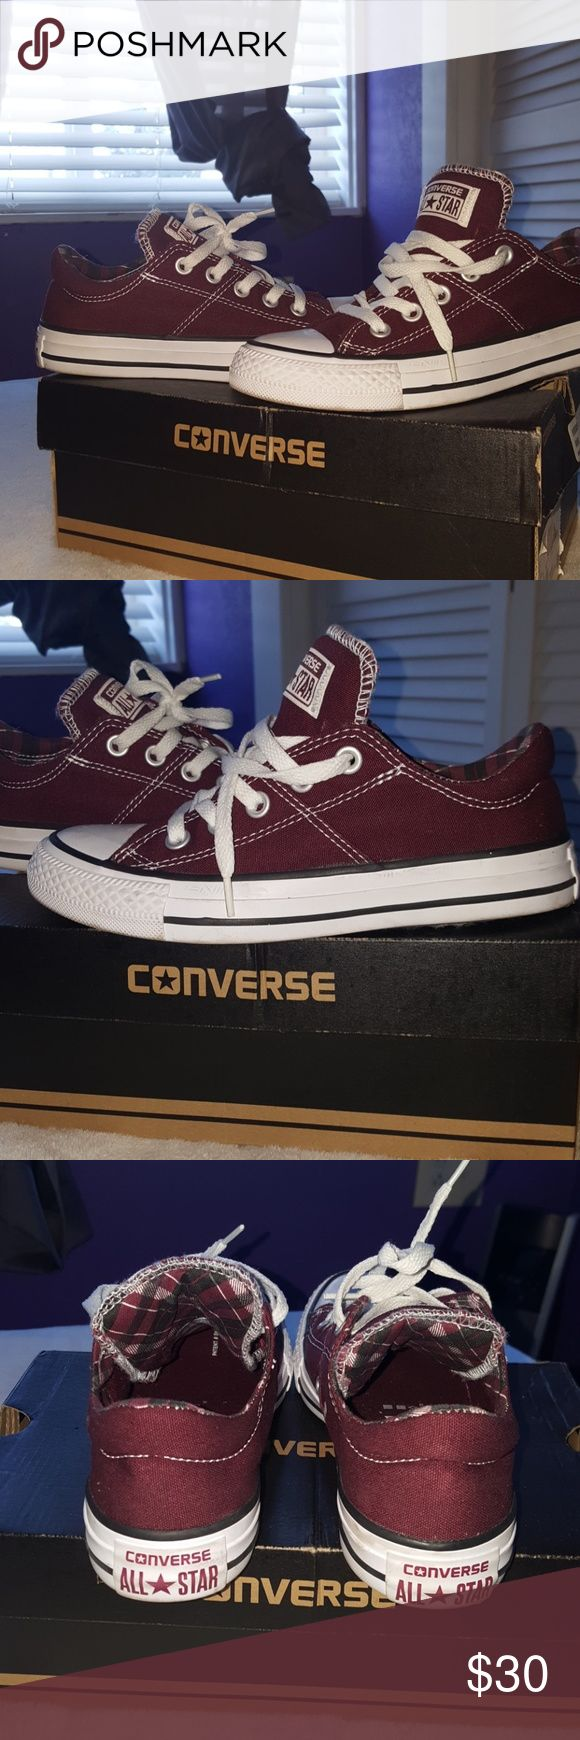 Converse shoes Only worn once, nice shoes wish I could keep size is to small for me. Deep burgendy color checkered inside. Comes with shoe box Converse Shoes Sneakers